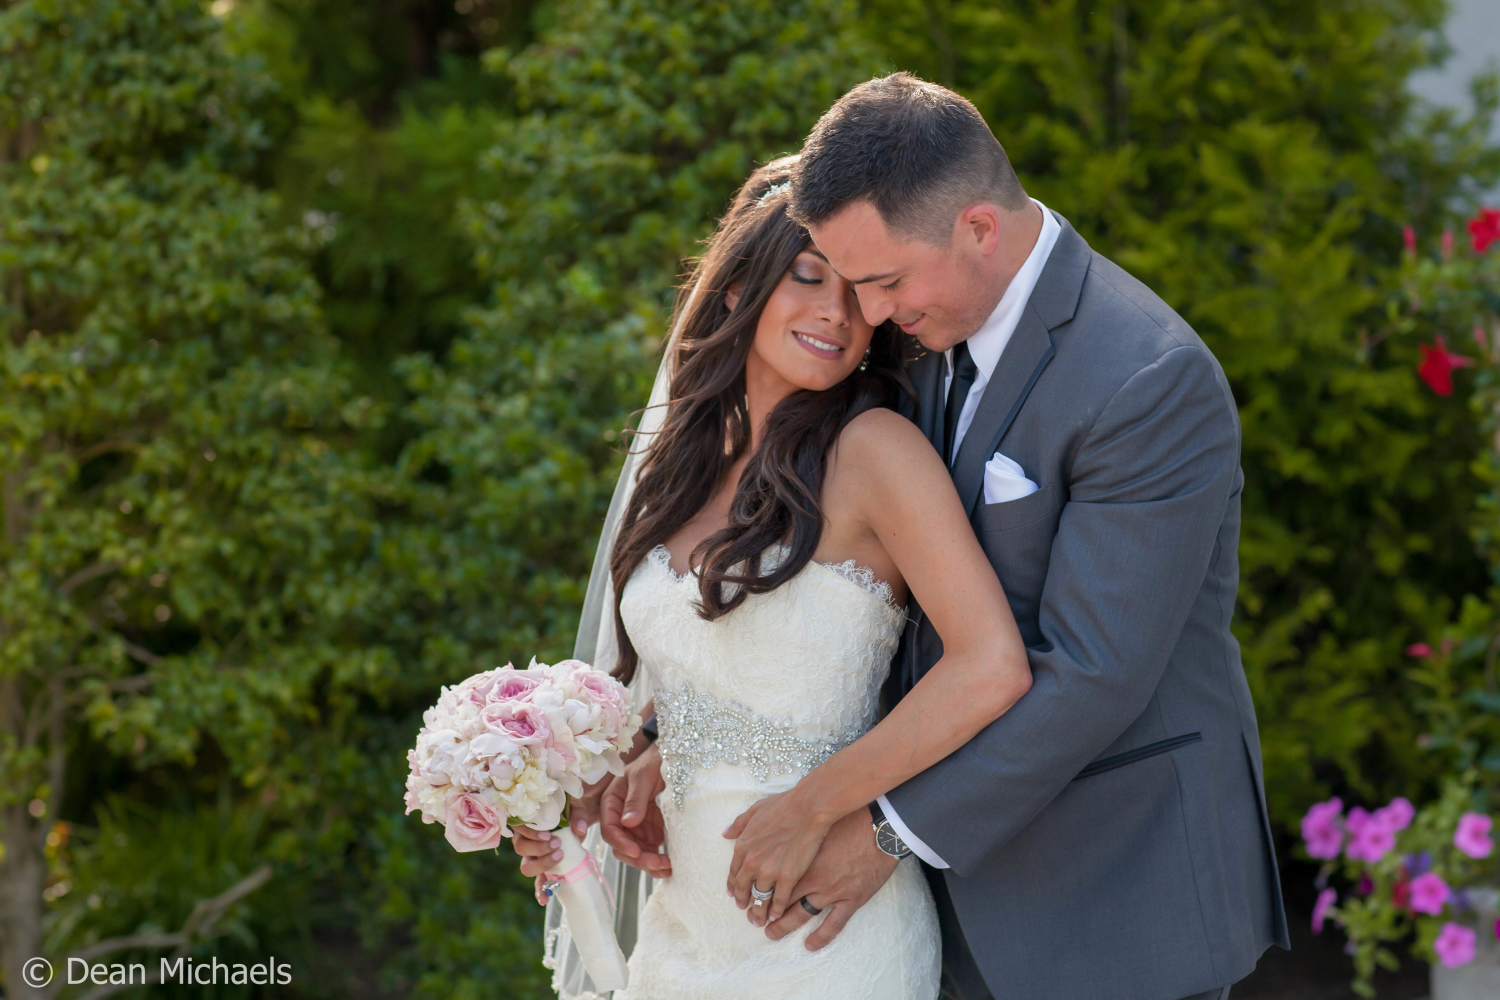 wedding-photographer-gallery-2-5ITVB7T8DL68.jpg